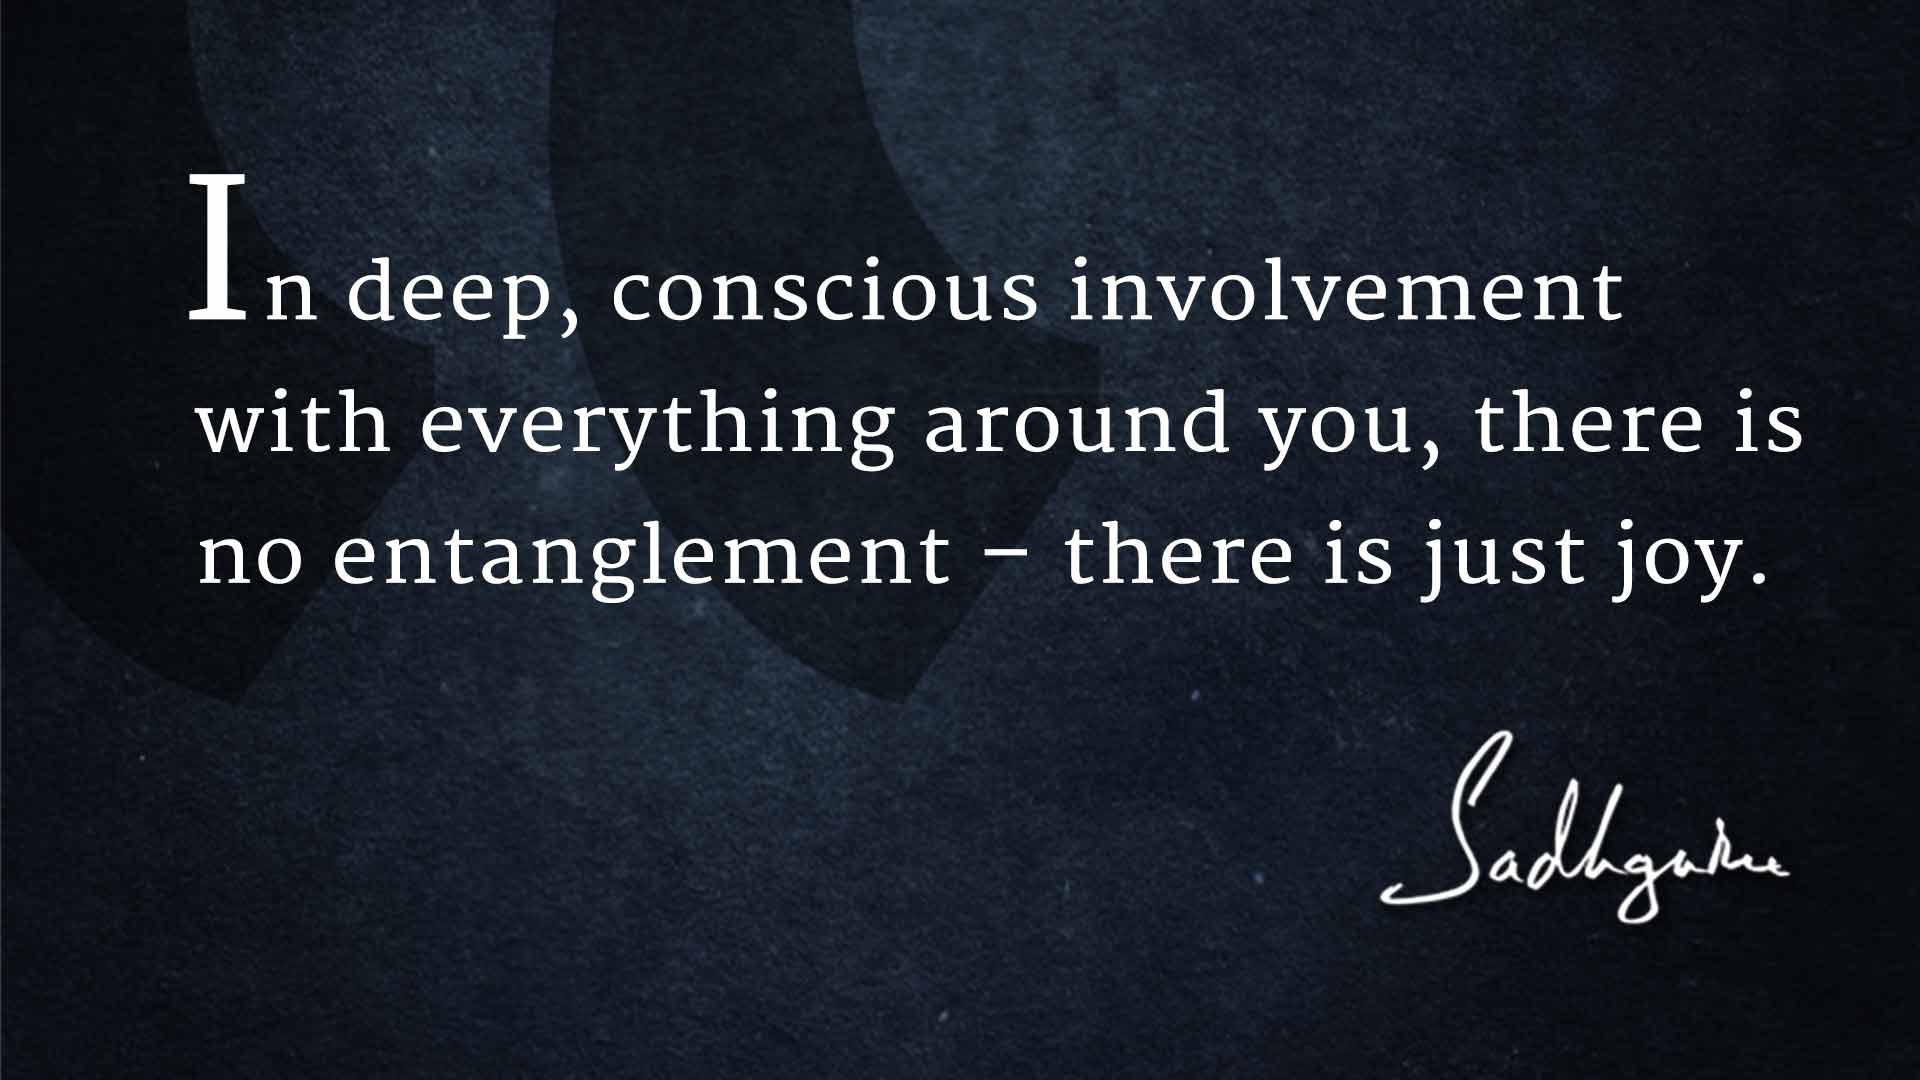 Conscious Quotes Living With Joy 6 Sadhguru Quotes To Inspire Your Happiness  The